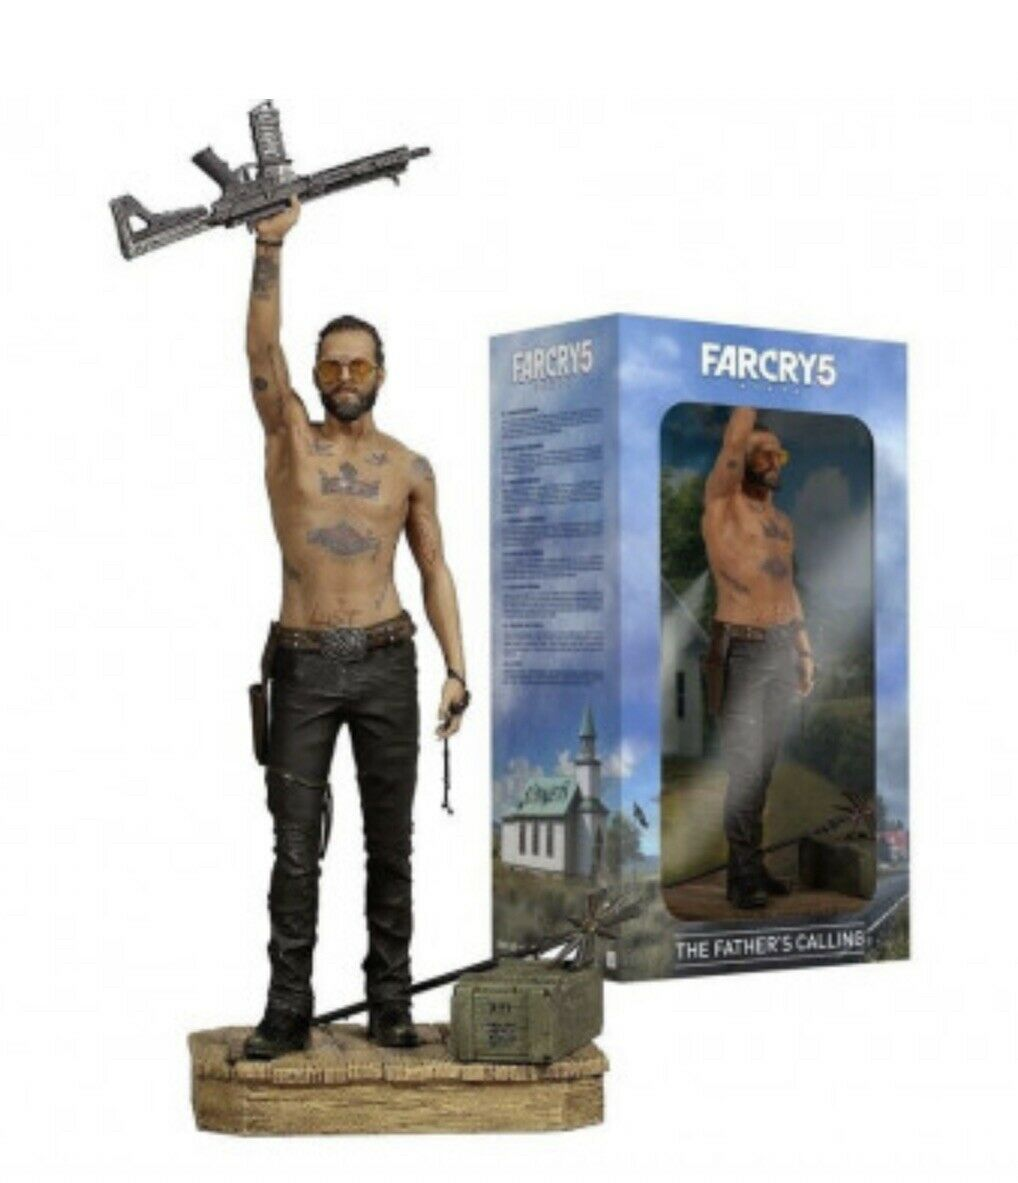 Far Cry 5 The Fathers S Calling Joseph Seed 12 Pvc Vinyl Statue